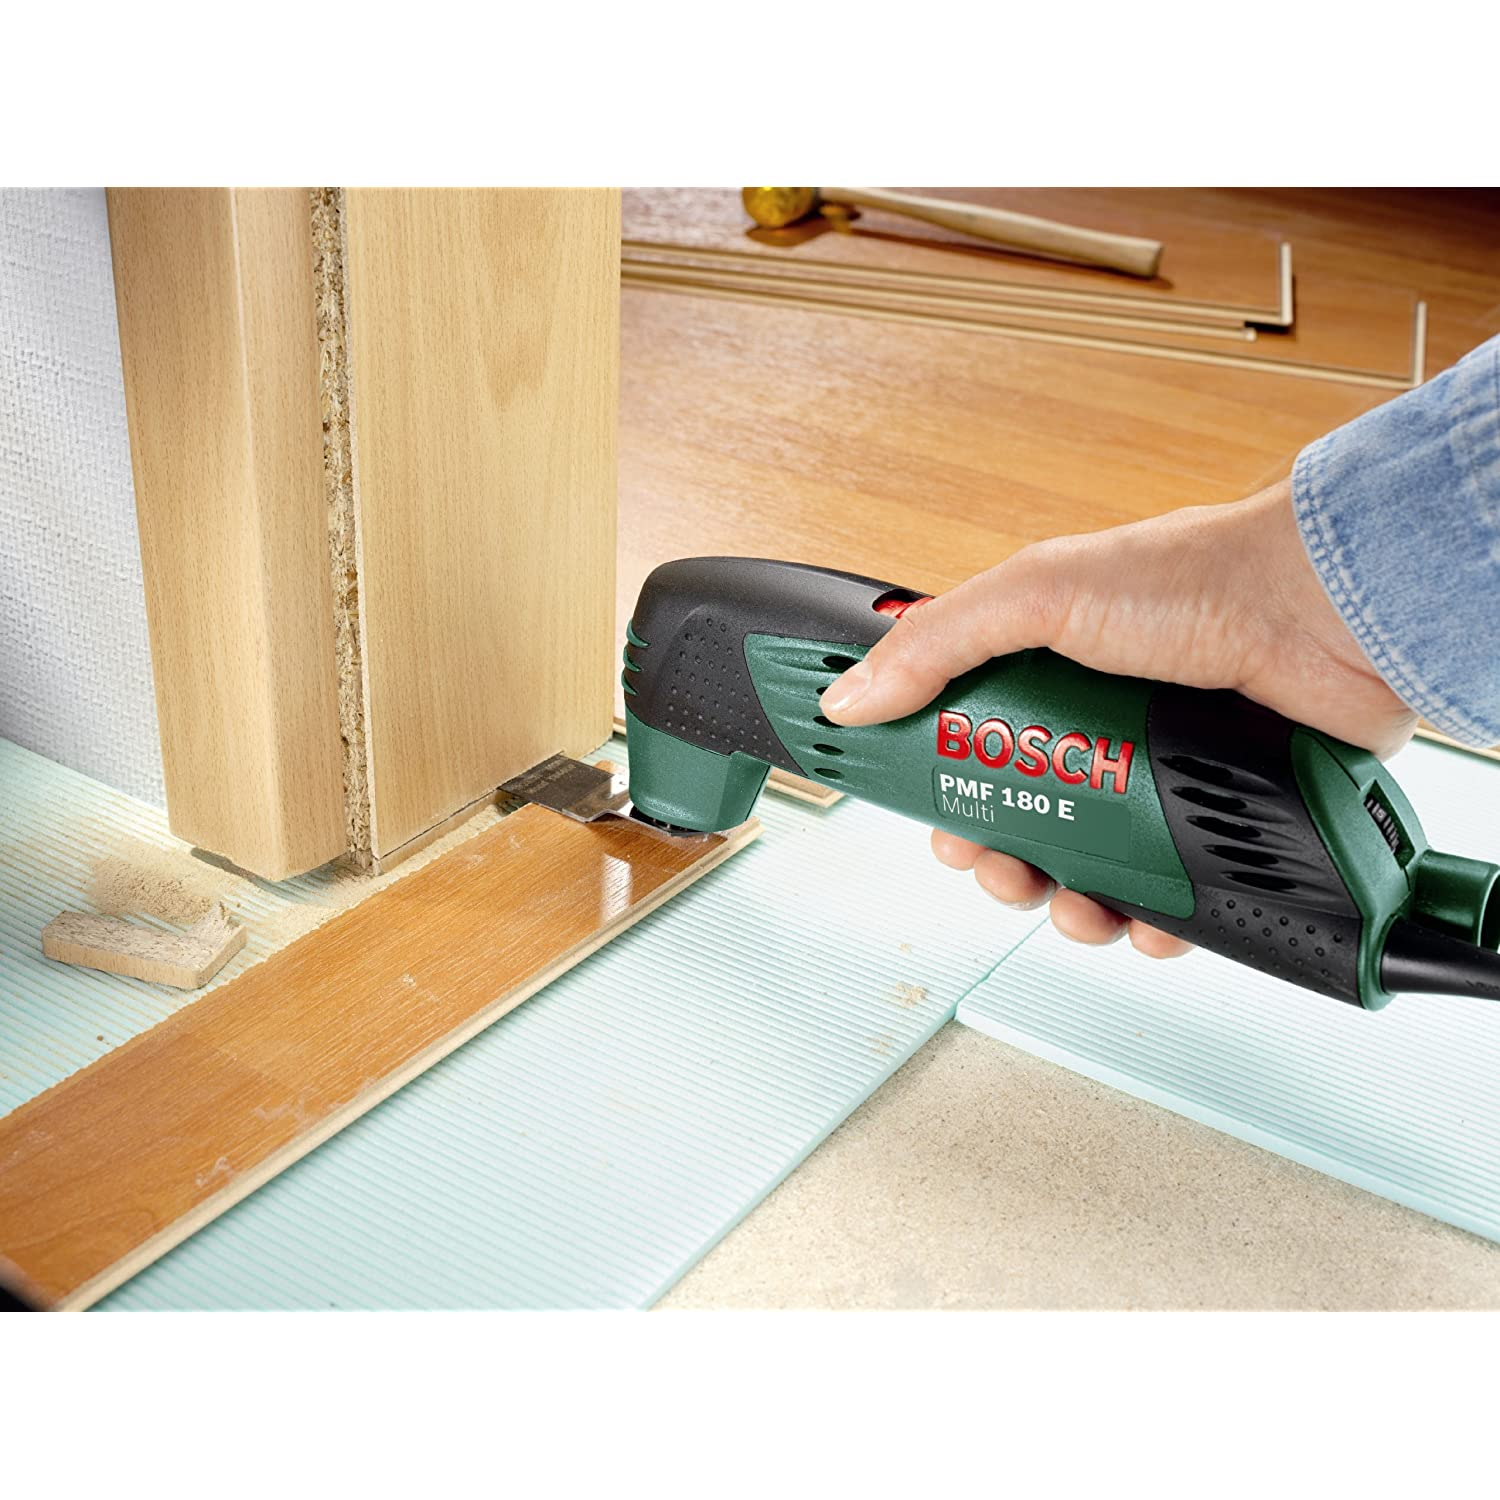 Laminate Flooring Tools Needed For Laminate Flooring